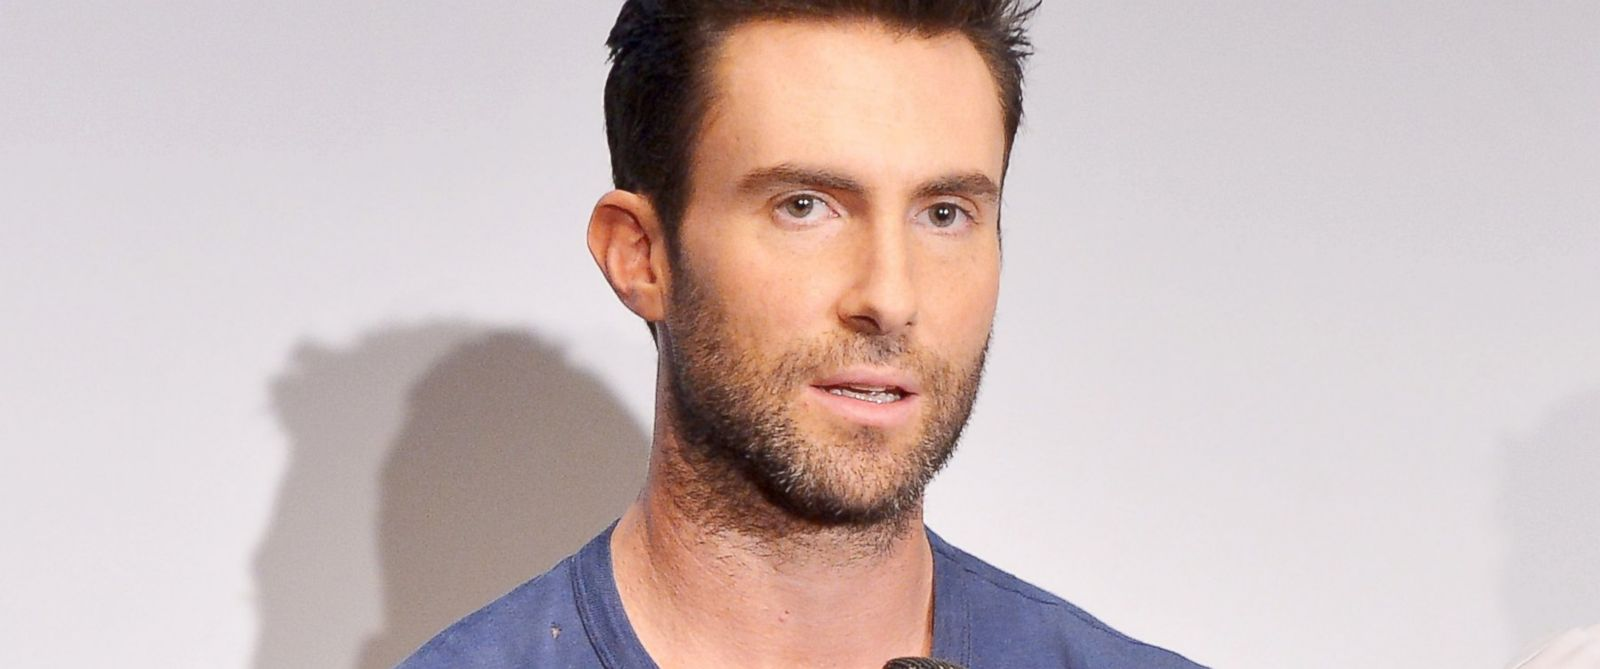 PHOTO: Adam Levine attends the Begin Again press conference at Crosby Street Hotel, June 26, 2014, in New York City.